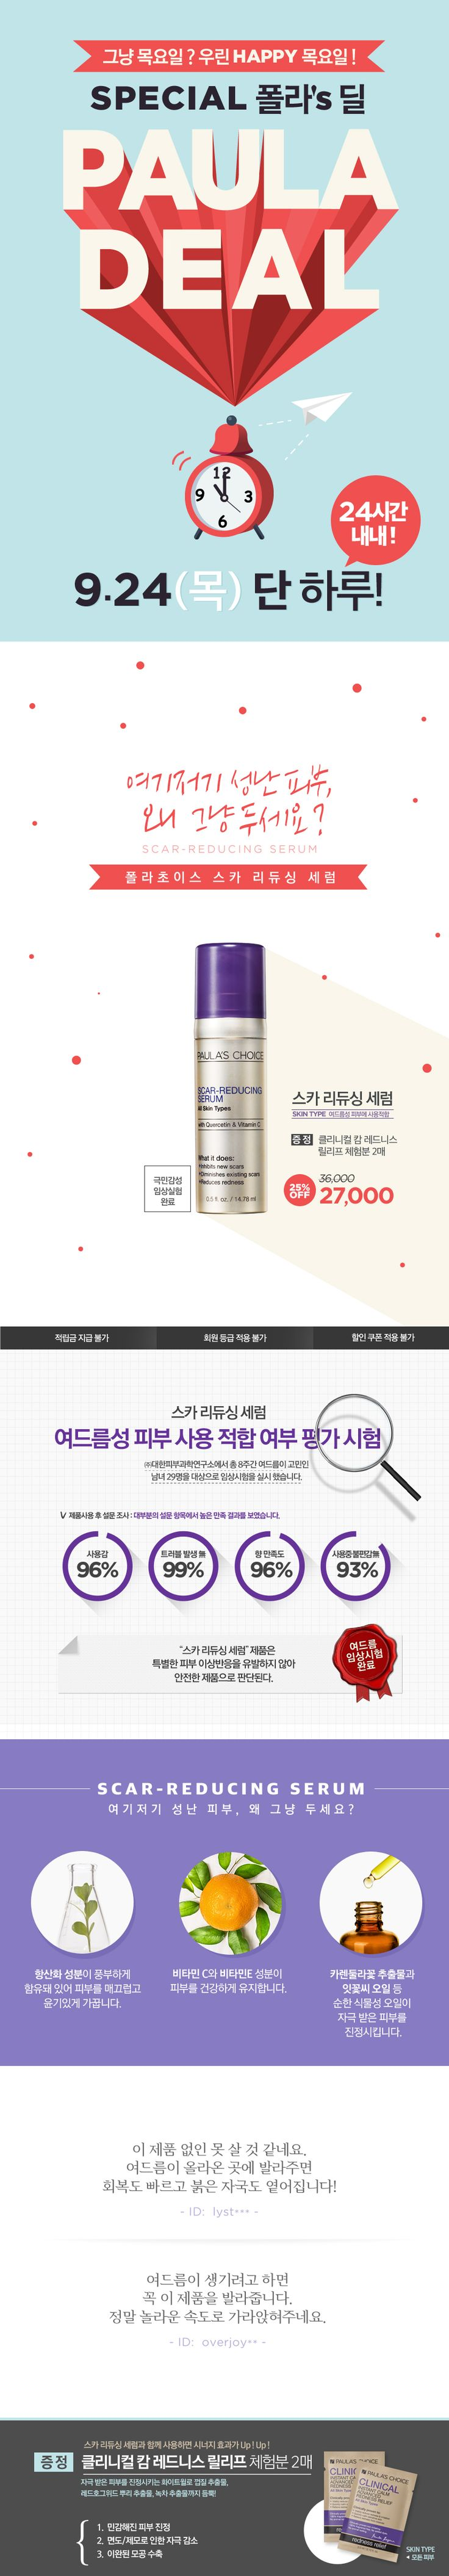 [PAULA'S CHOICE] WEB / WEBPAGE / TIME SALE / PAULA'S DEAL / WEBPAGE / WEBDESIGN / LAYOUT / COSMETICS / 폴라초이스 / 이벤트 / 할인이벤트 / 웹디자인